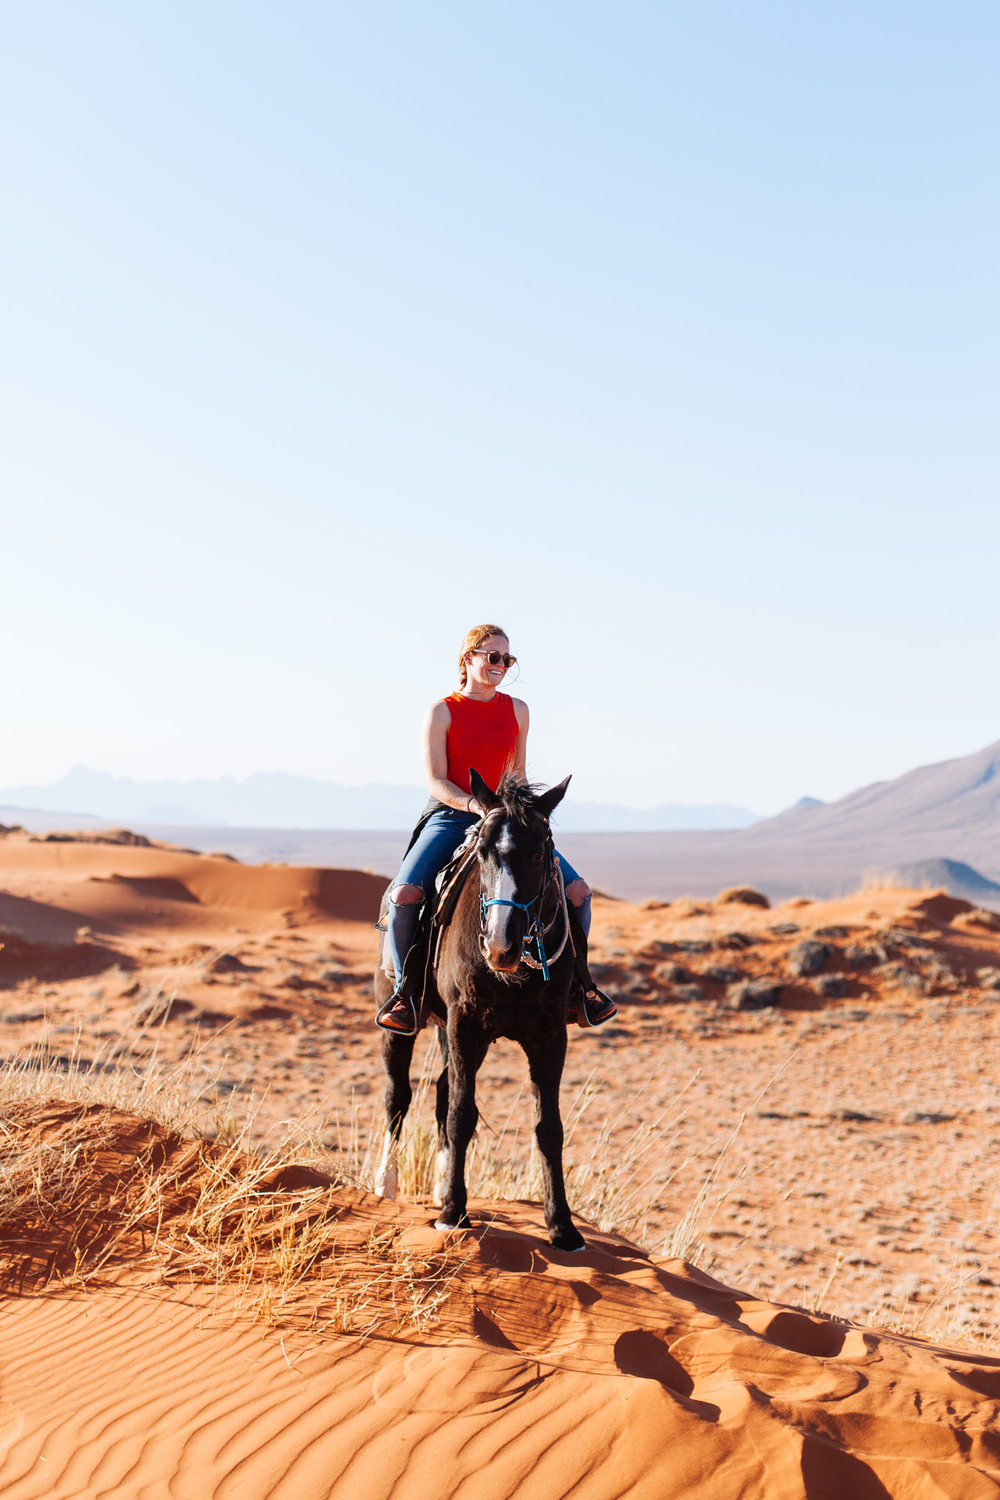 One last dune hike, but this time on horses!